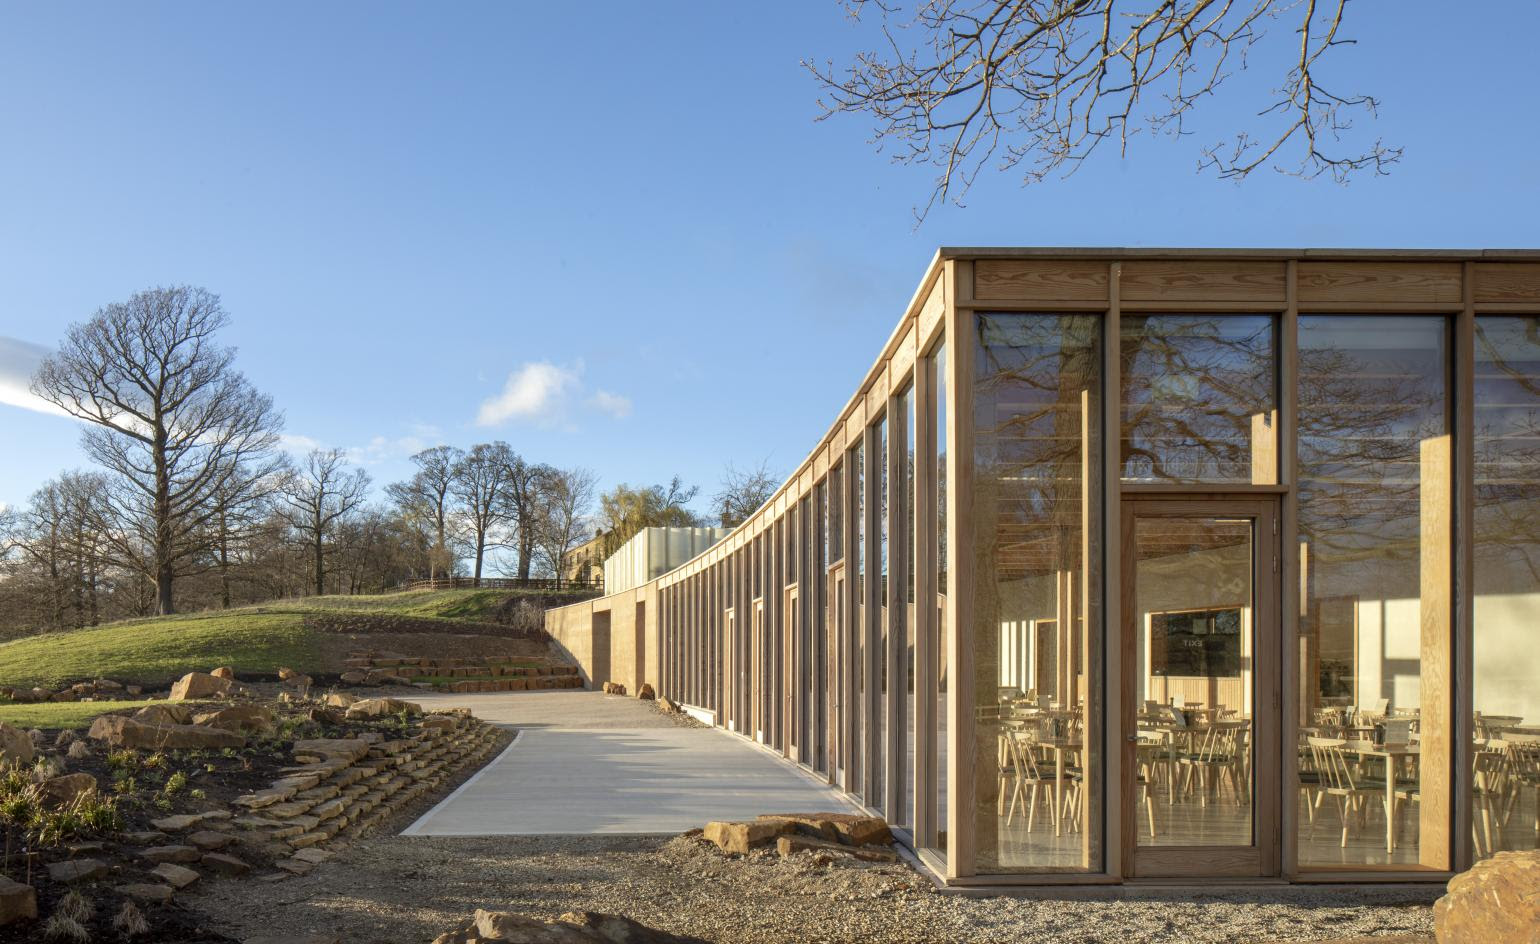 Yorkshire Sculpture Park opens visitor centre designed by Feilden Fowles